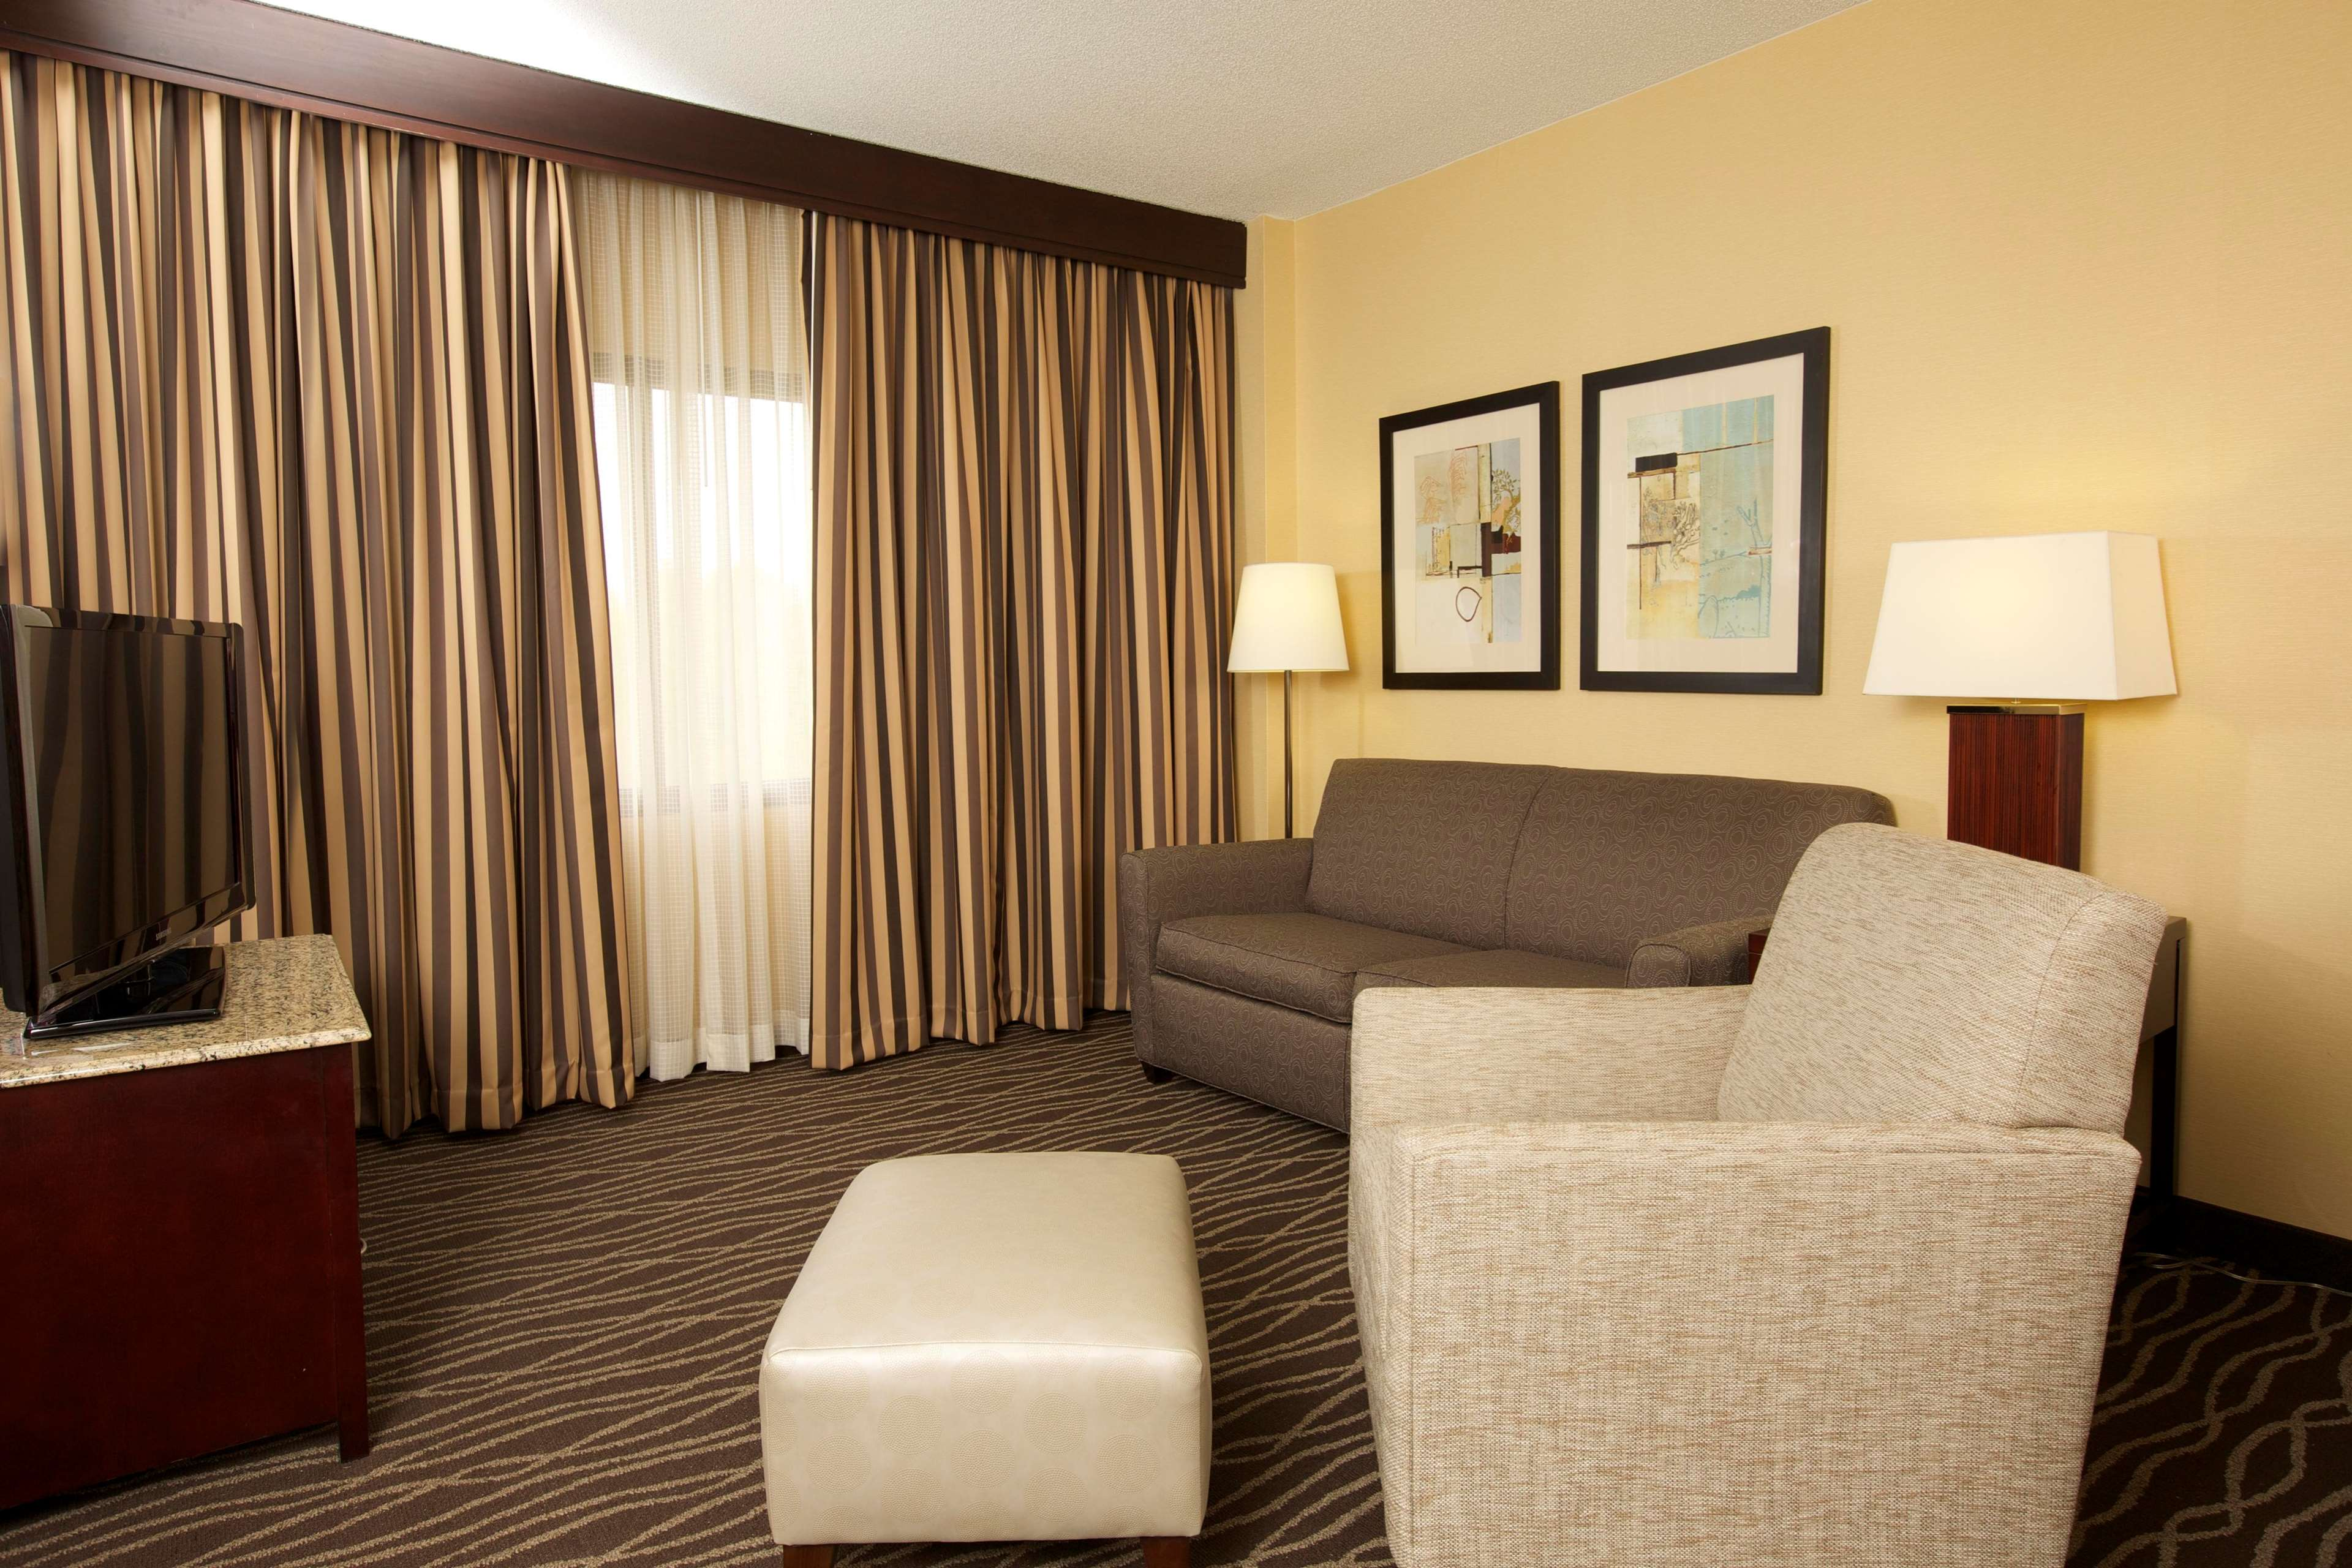 DoubleTree Suites by Hilton Hotel Raleigh - Durham image 30